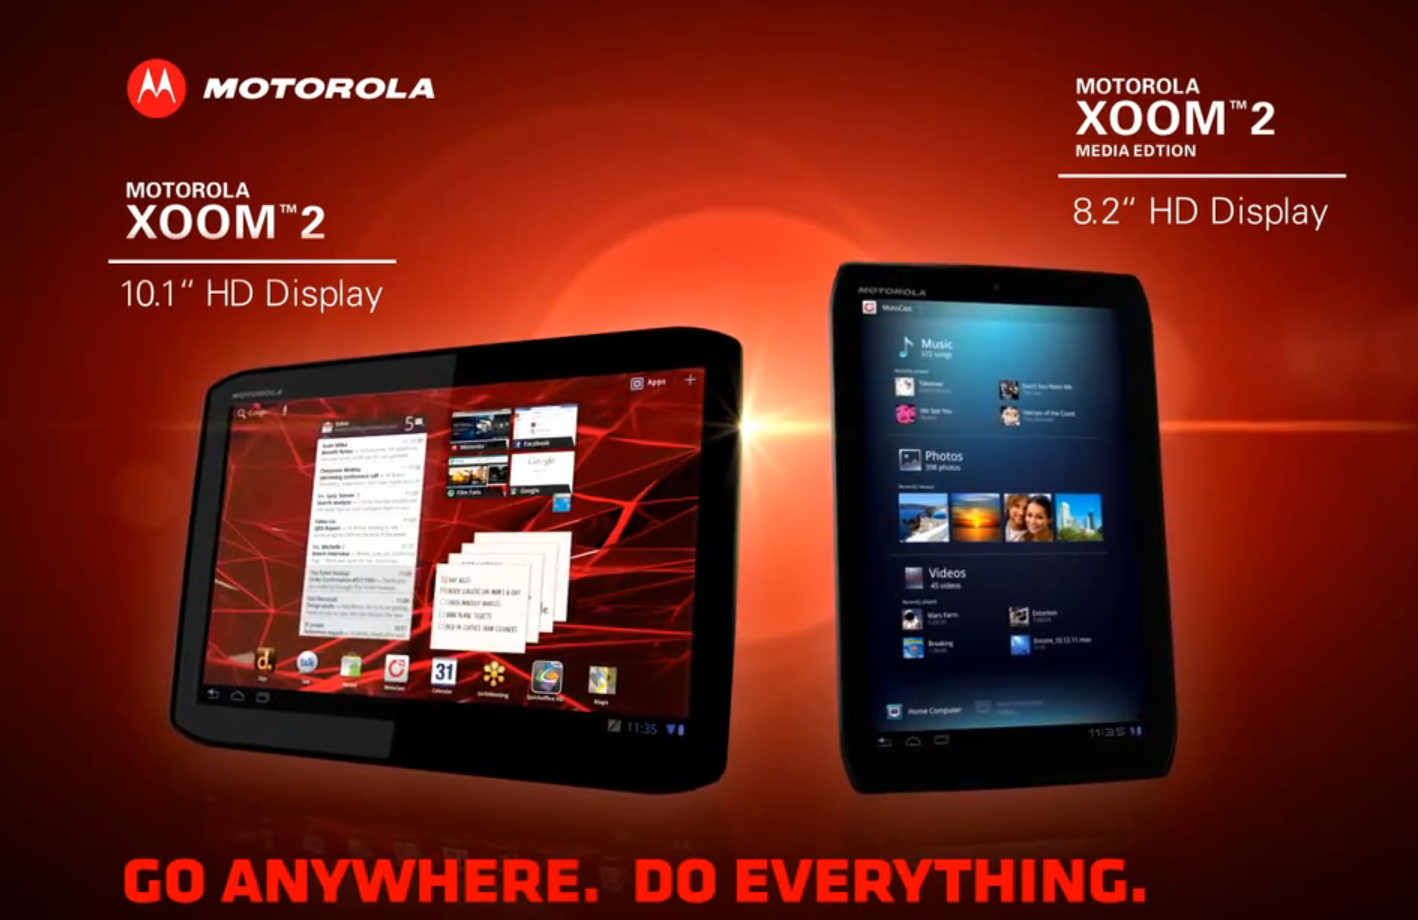 motorola unveils xoom 2 media edition computing forever archive sources. Black Bedroom Furniture Sets. Home Design Ideas